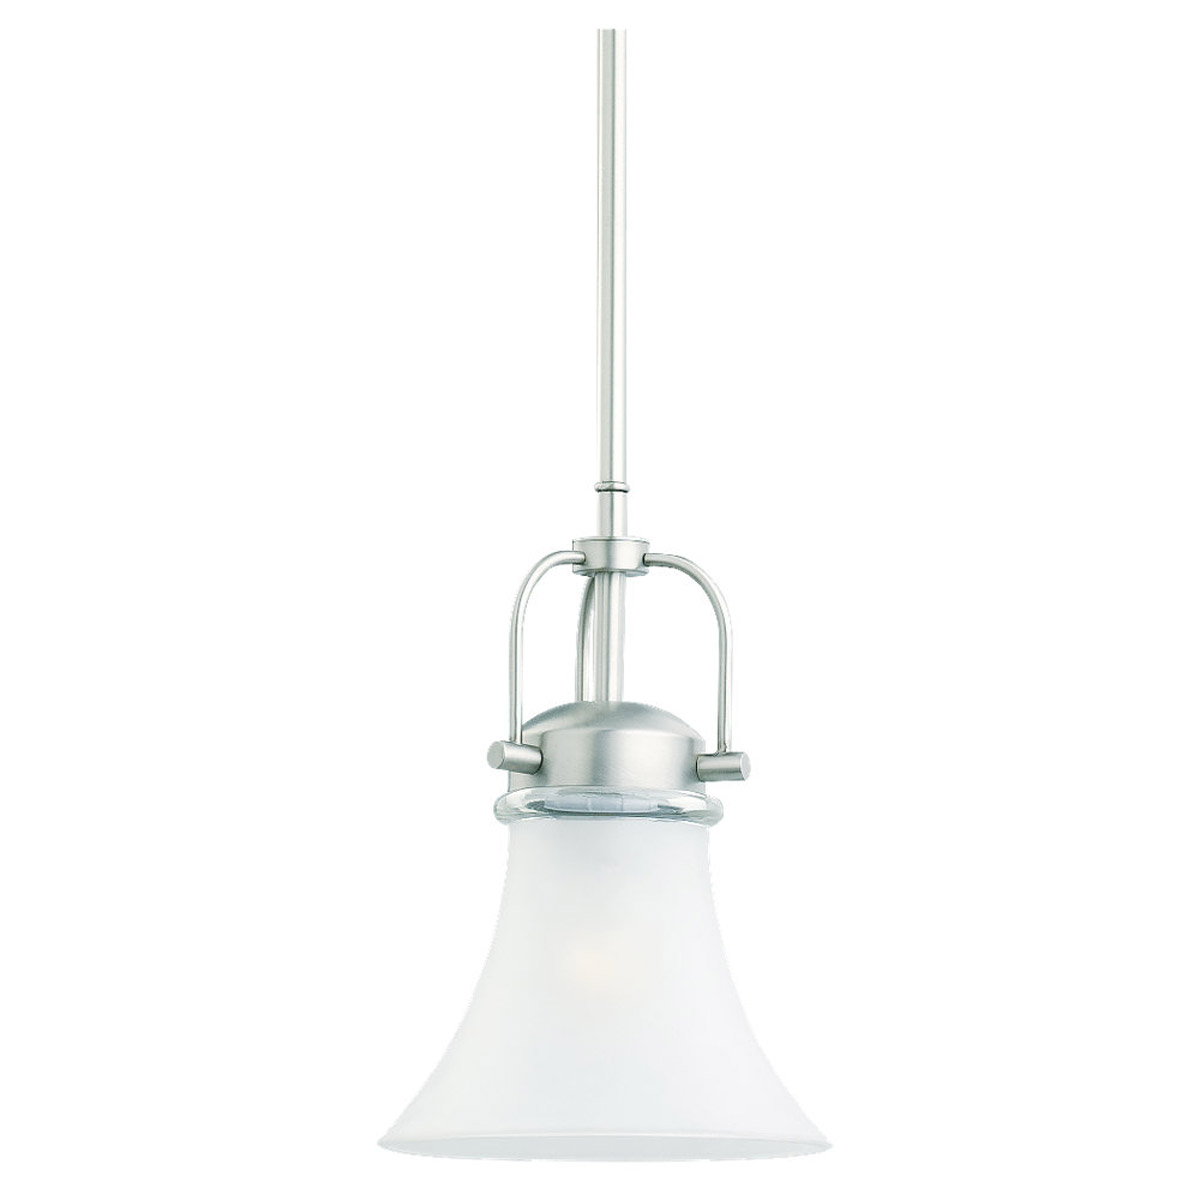 Sea Gull Lighting Newport 1 Light Mini Pendant in Antique Brushed Nickel 61283BLE-965